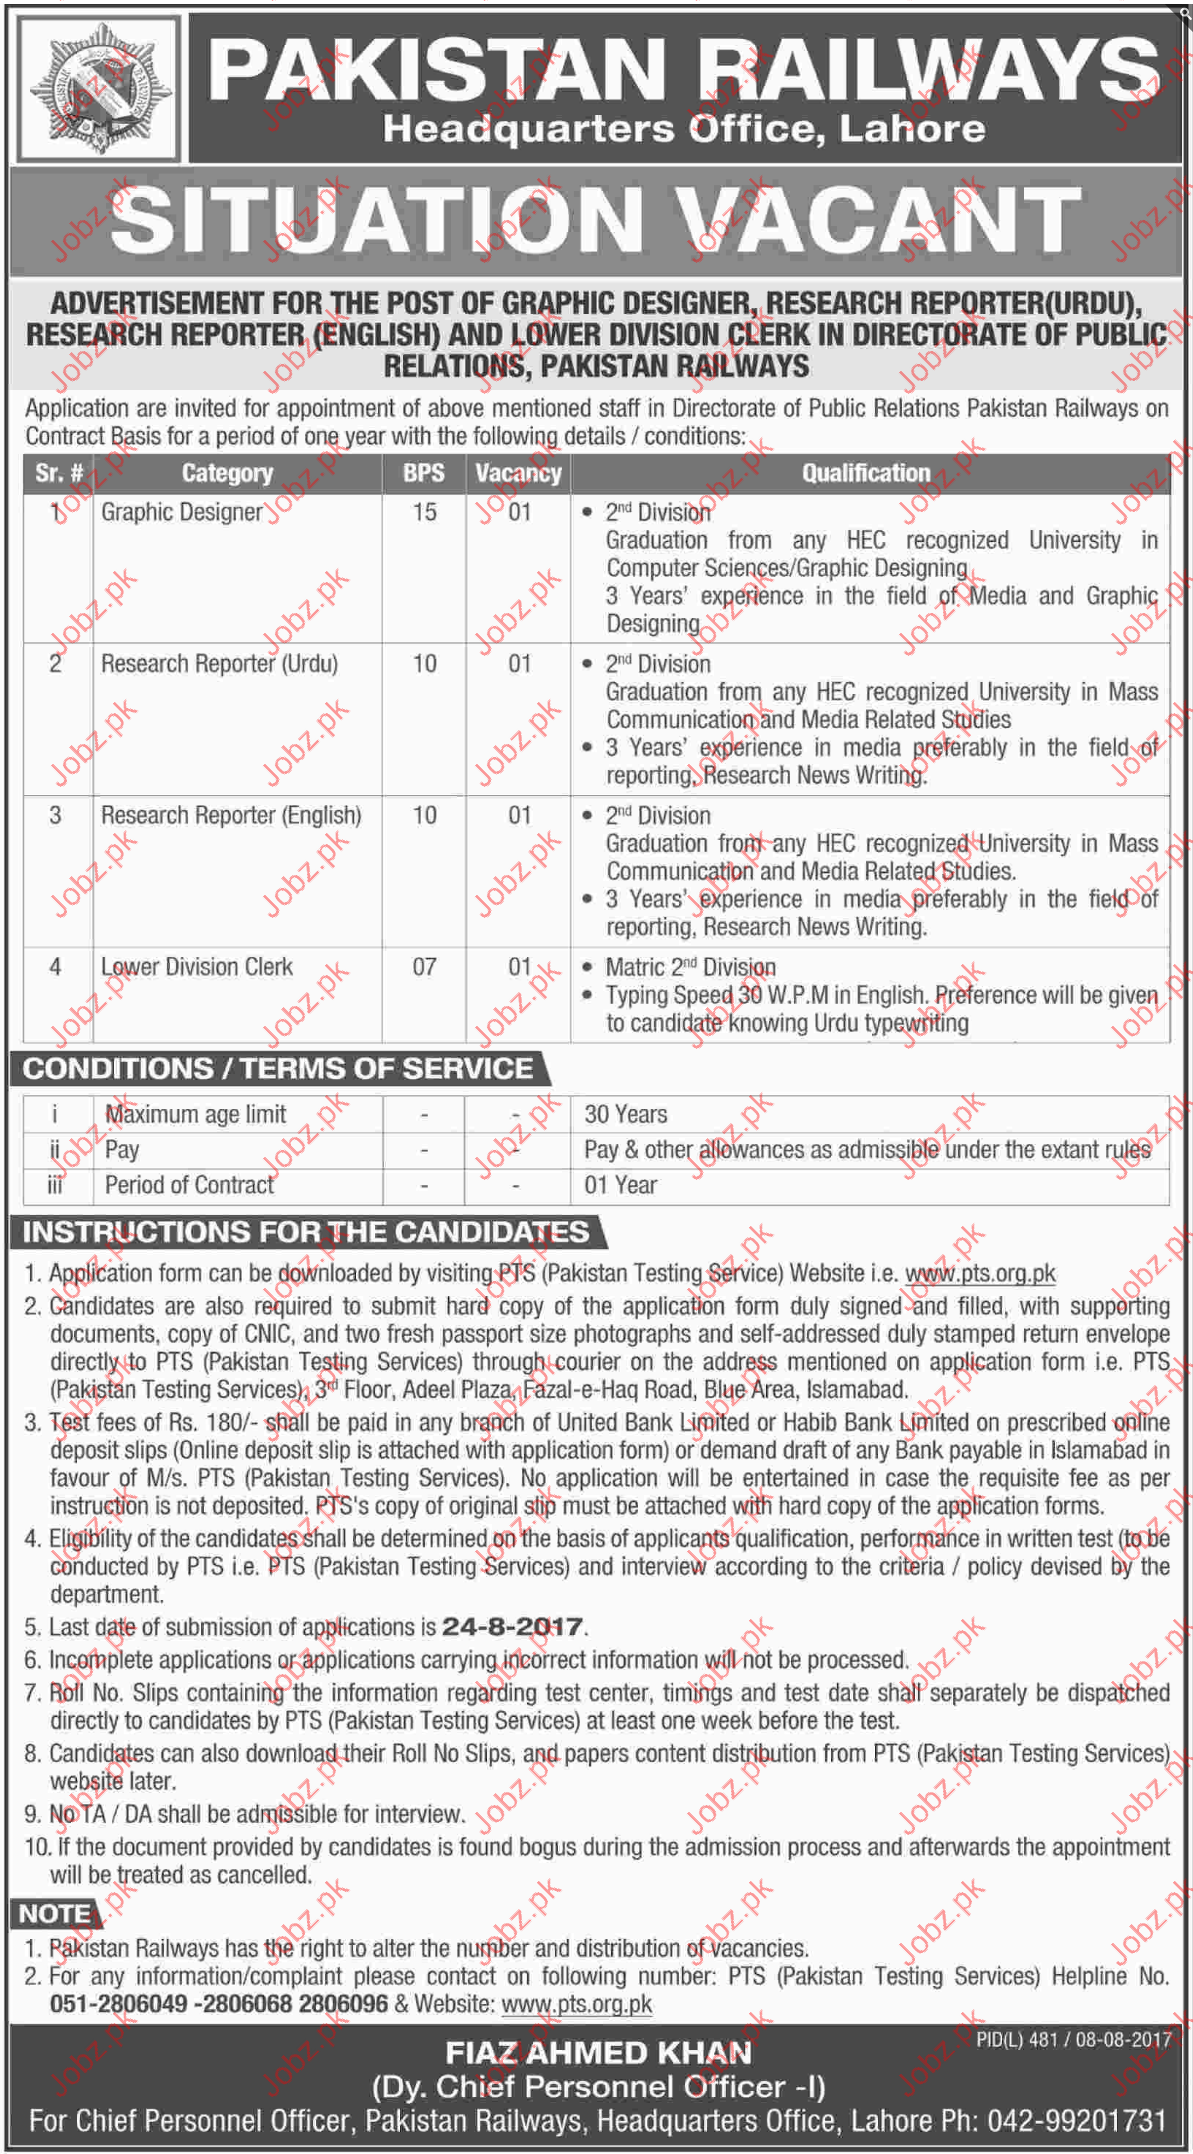 Pakistan Railways Headquarter Jobs